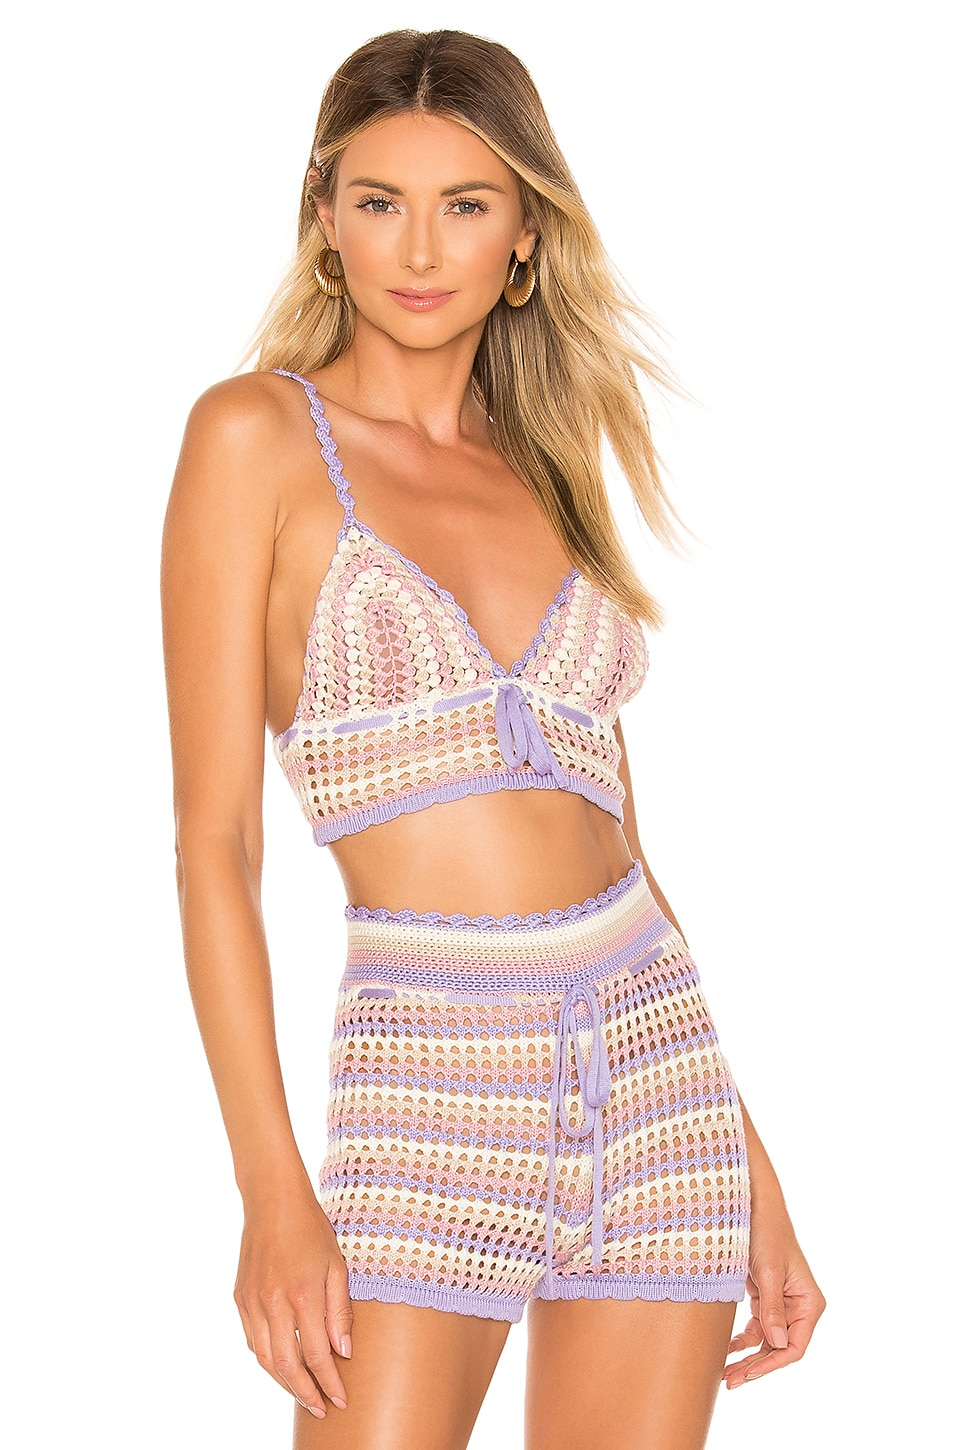 House of Harlow 1960 x REVOLVE Canyon Bralette in Lavender Stripe